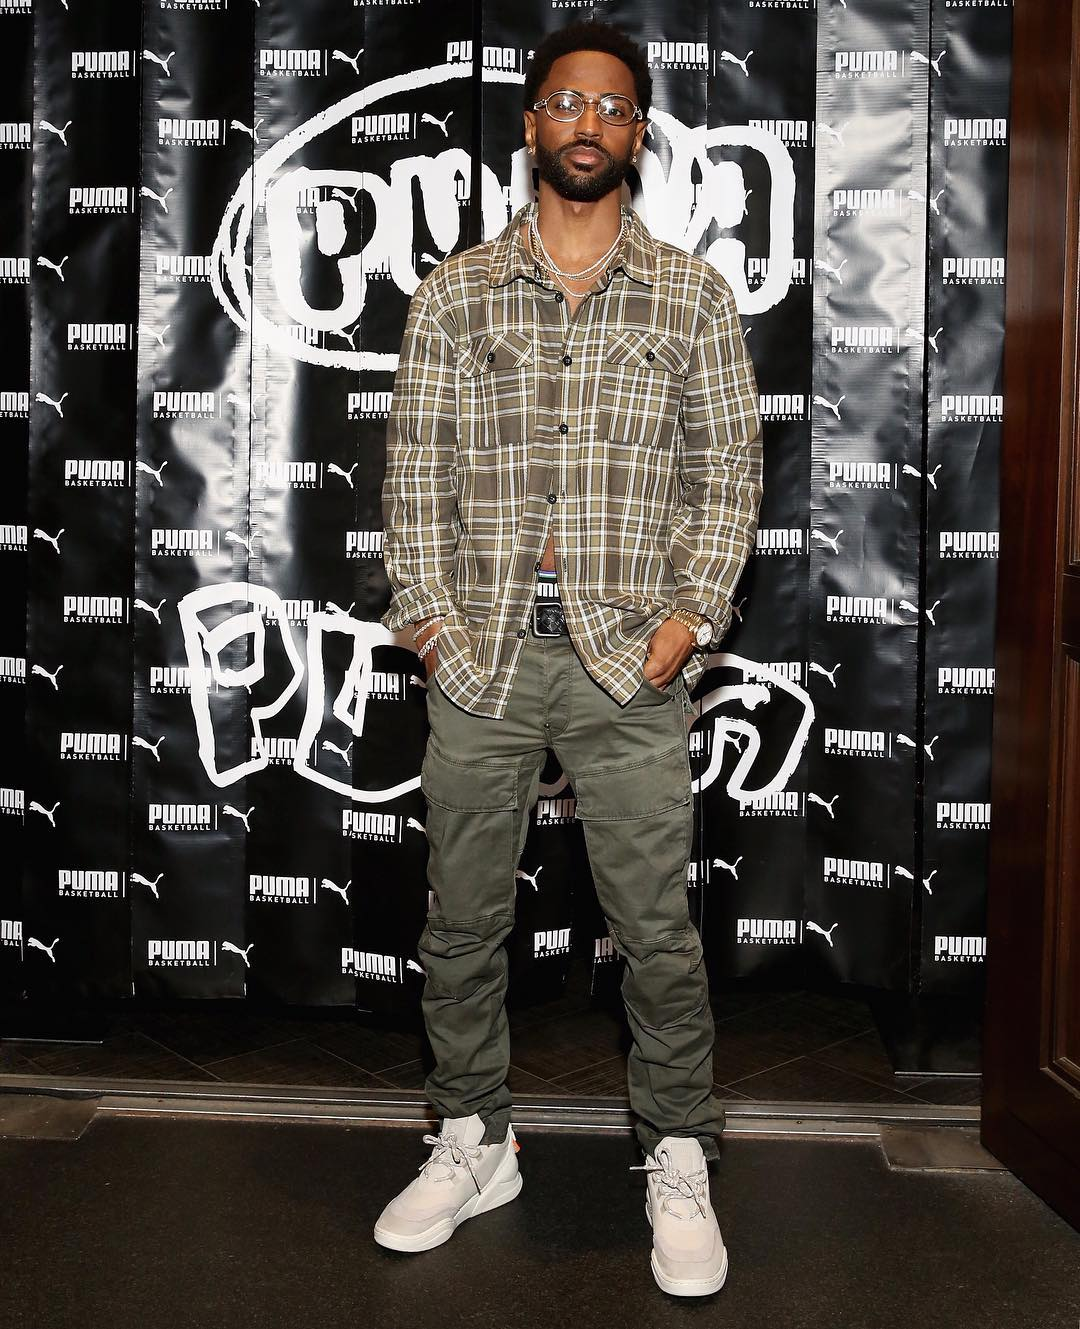 SPOTTED: Big Sean Rocks Modest Fit for Puma Basketball Launch Party